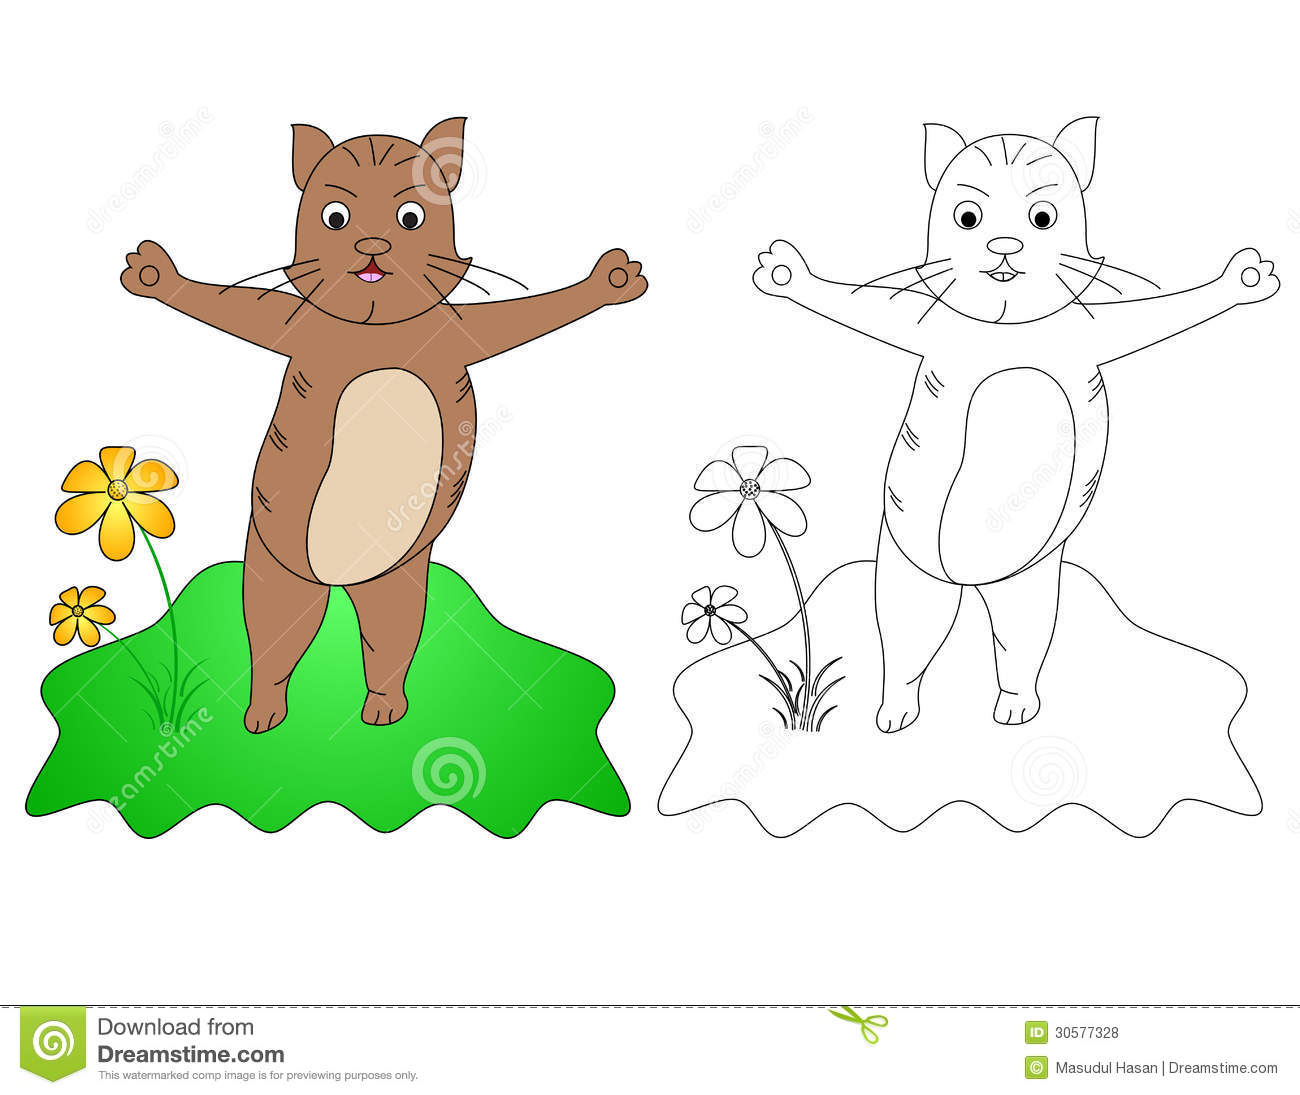 c for cat stock vector illustration of color animals 30577328 - Drawing And Colouring Pictures For Kids